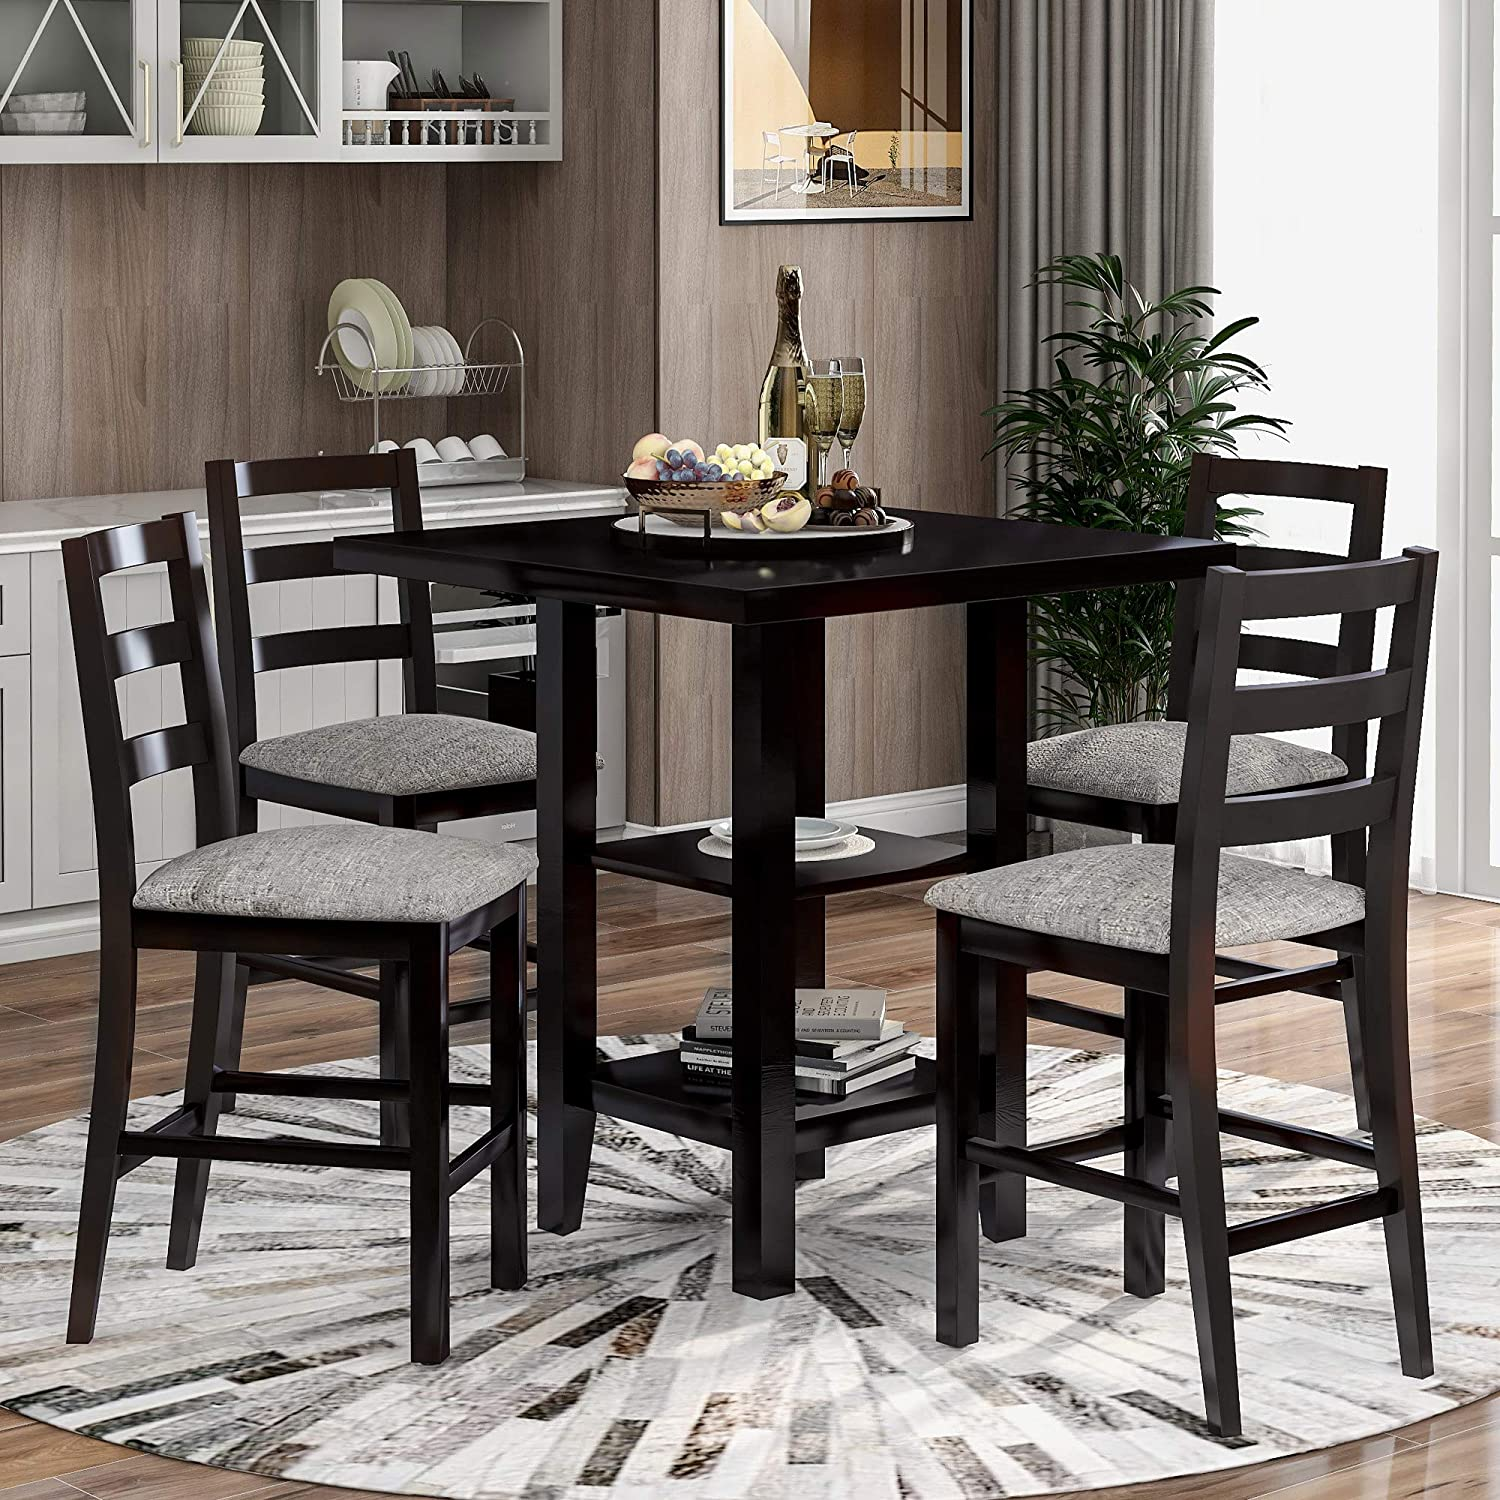 5 Piece Dining Table Set Wood Counter Height Dining Set Square Kitchen Table With 2 Tier Storage Shelf And 4 Padded Chairs Espresso Home Kitchen Kitchen Dining Room Furniture Ekoios Vn